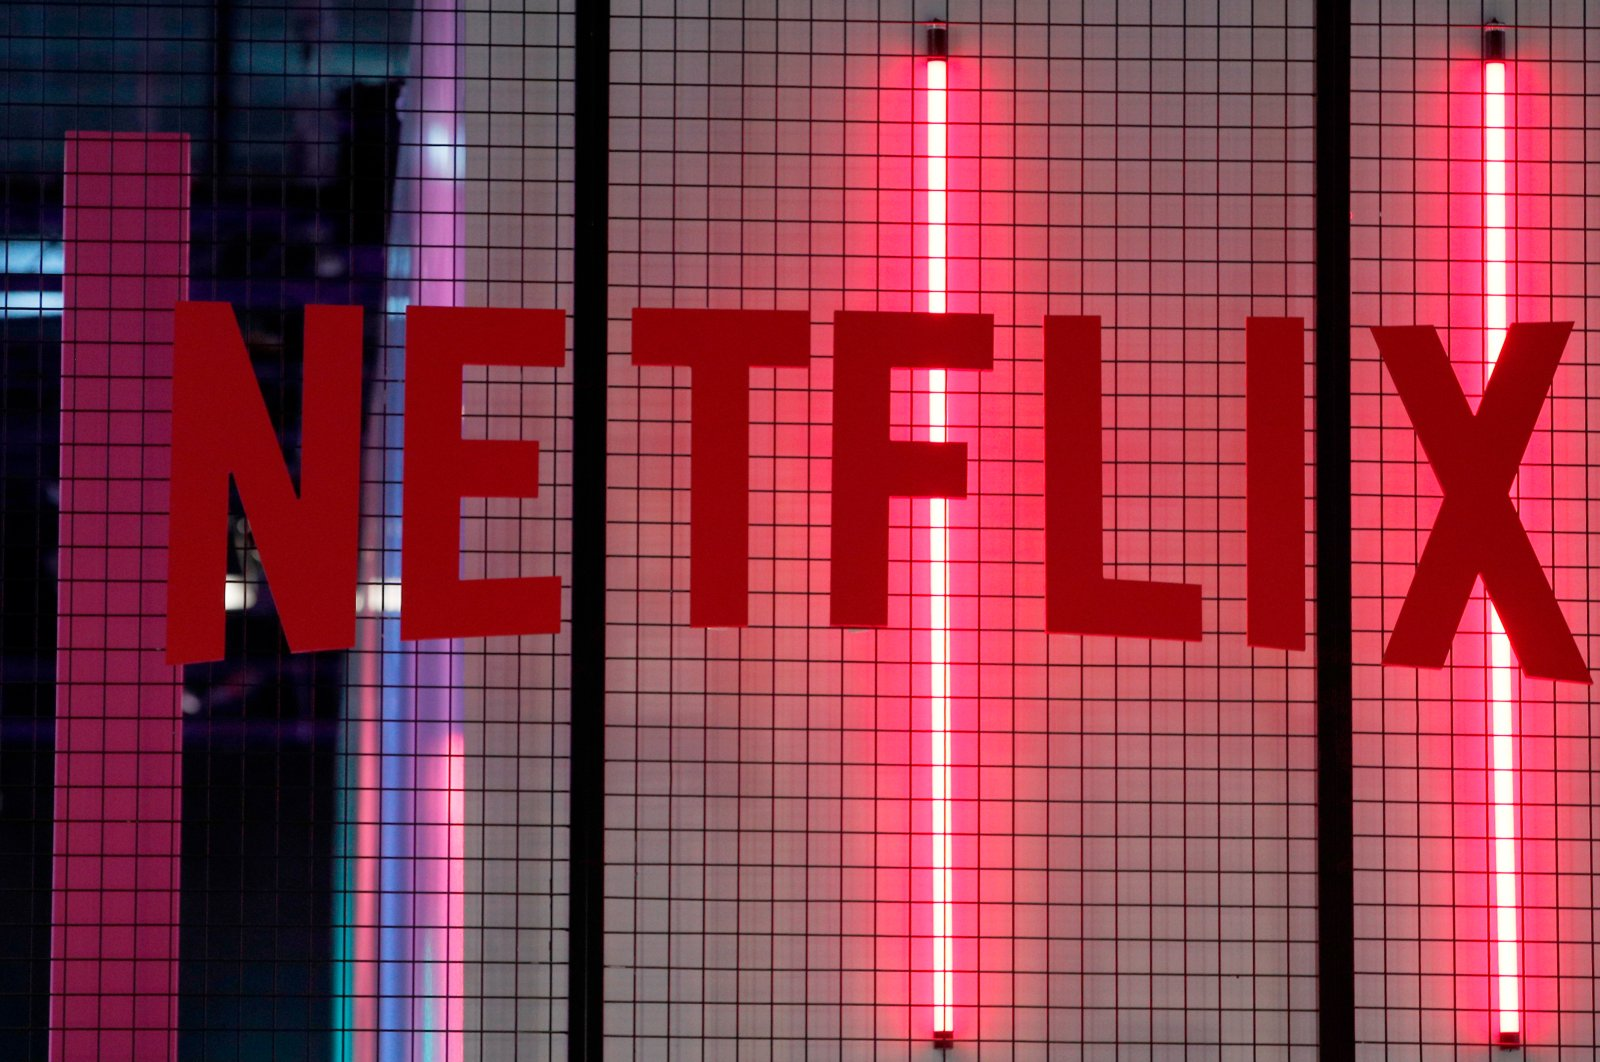 The logo of Netflix on display at the Paris Games Week event in Paris, France, Nov. 4, 2017. (AP Photo)